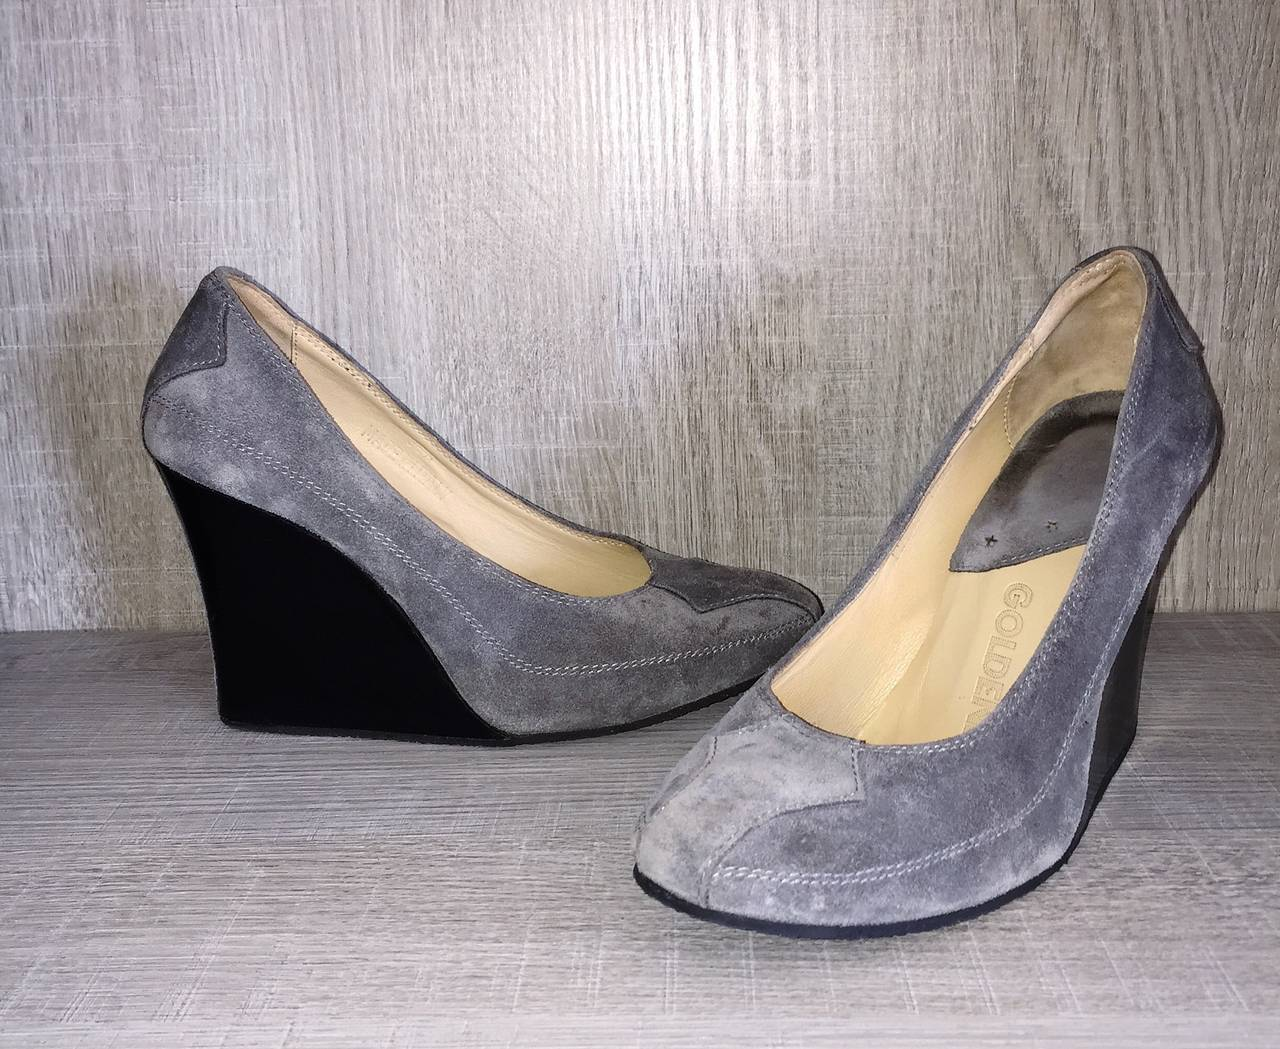 Brand new pair of Goldenbleu gray leather suede wedges! Never worn. Perfect gray color, that goes with everything! Optical illusion heel, that looks like a stiletto from the back, at first glance. Extremely comfortable, with a chic look---perfect